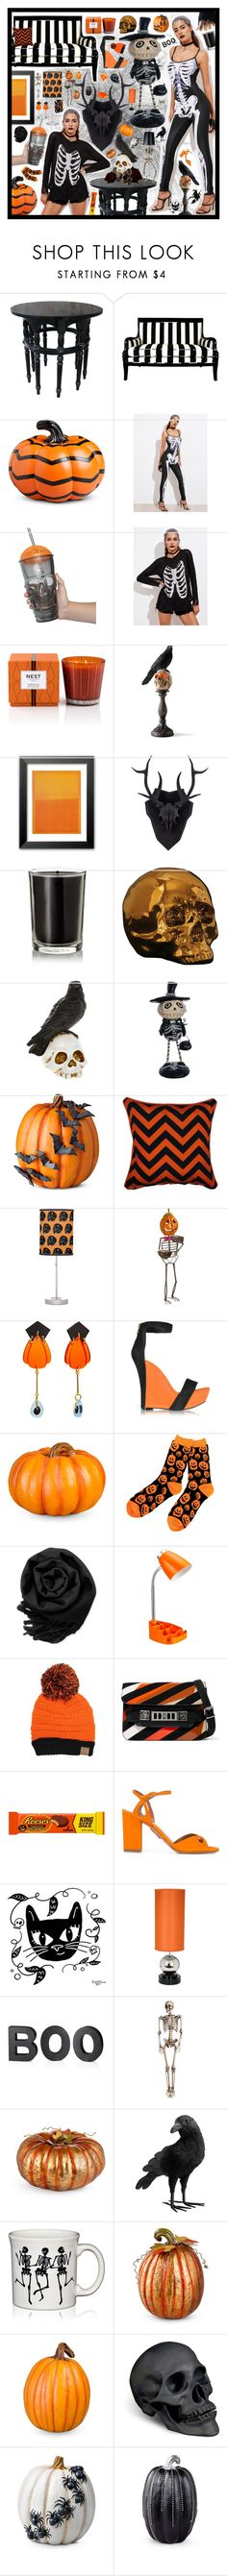 """Halloween Party!"" by beanpod ❤ liked on Polyvore featuring nOir, Improvements, Nest Fragrances, Grandin Road, Coqui Coqui, Seletti, Allstate Floral, National Tree Company, Balmain and Gearonic"